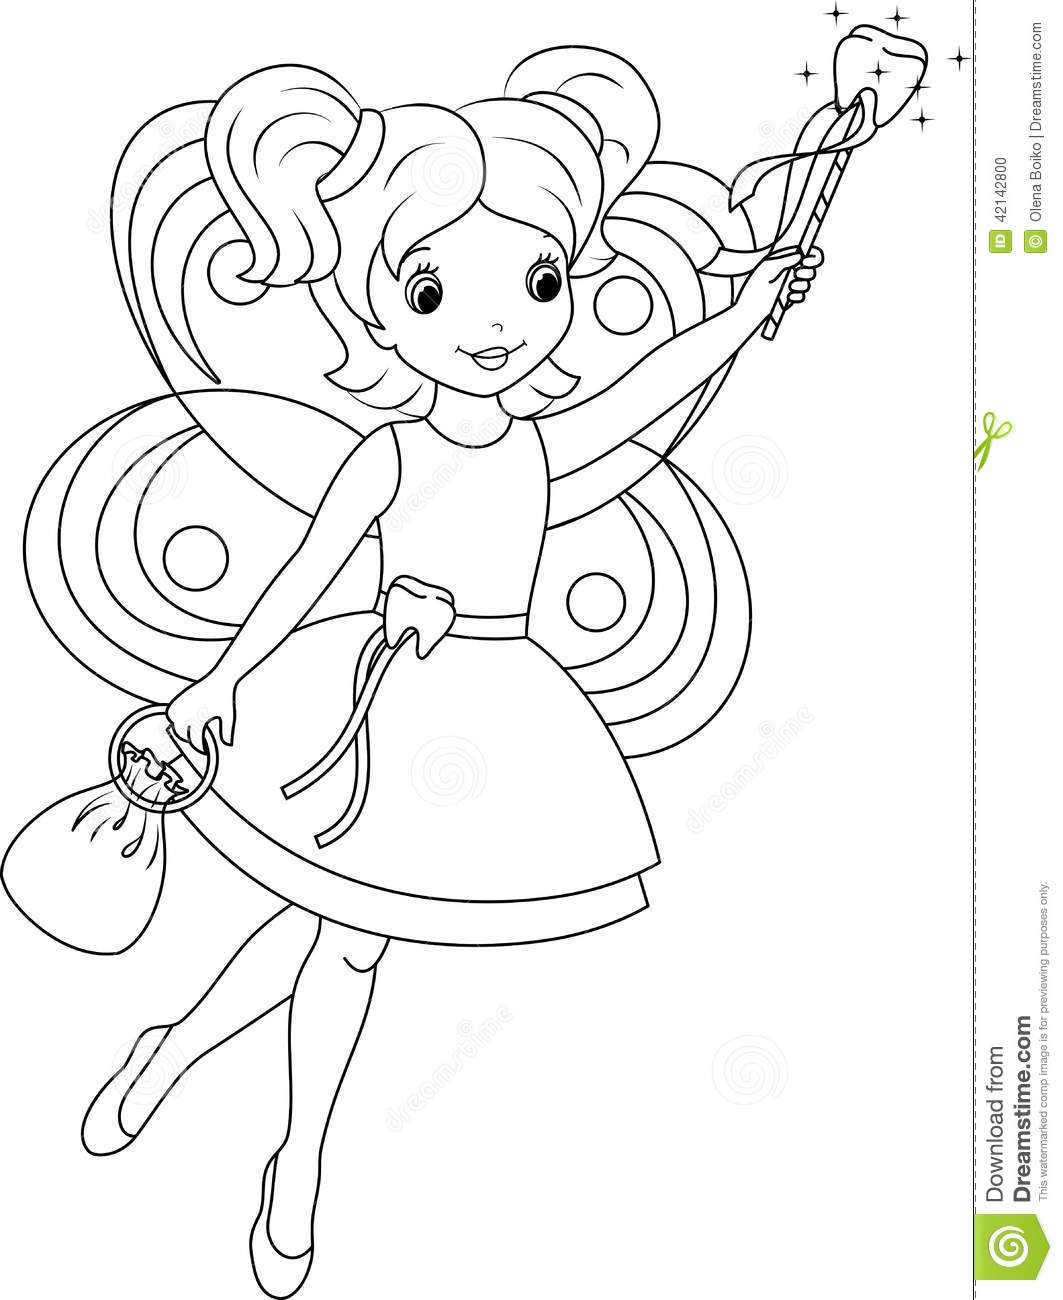 Tooth Fairy Coloring Pages To Print At Getcolorings